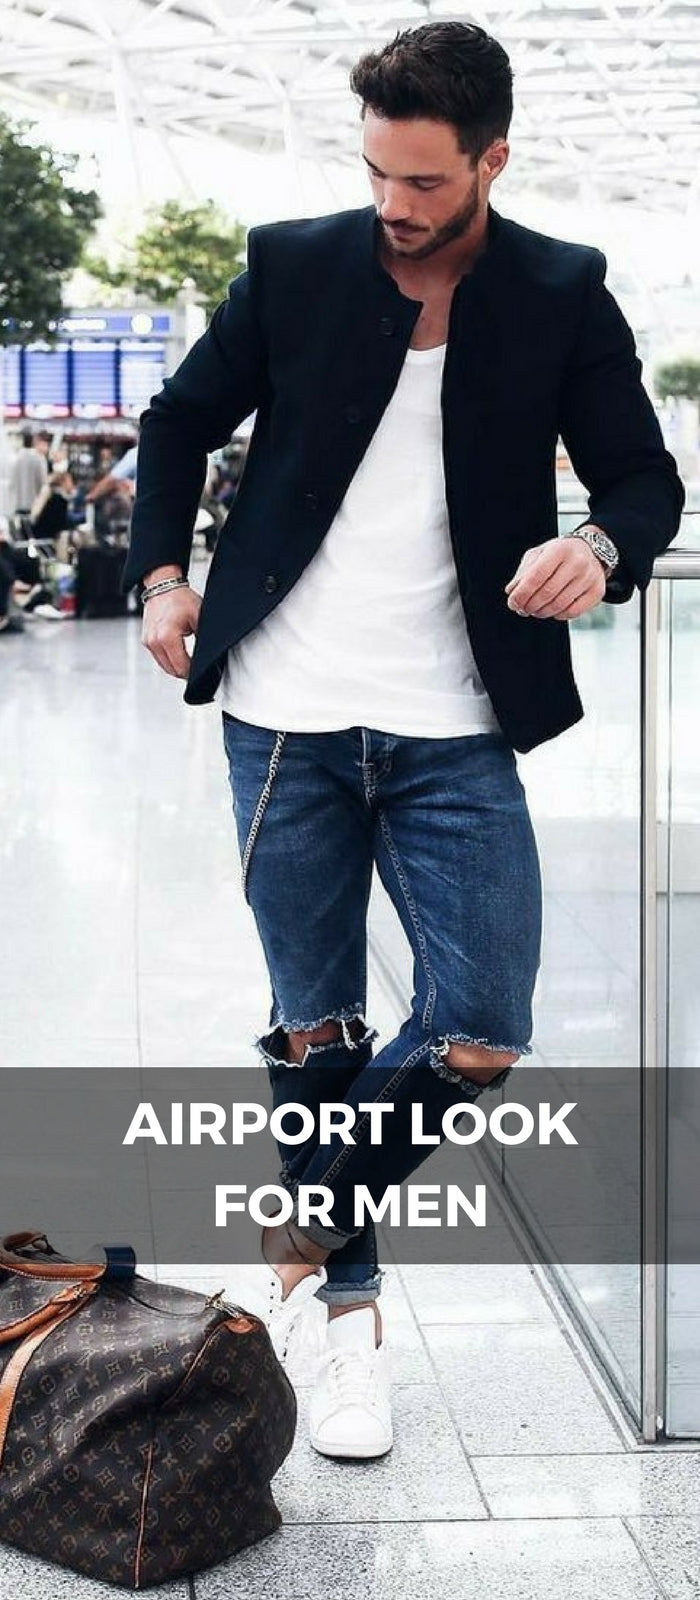 Airport Looks, Airport Outfit Ideas For Men